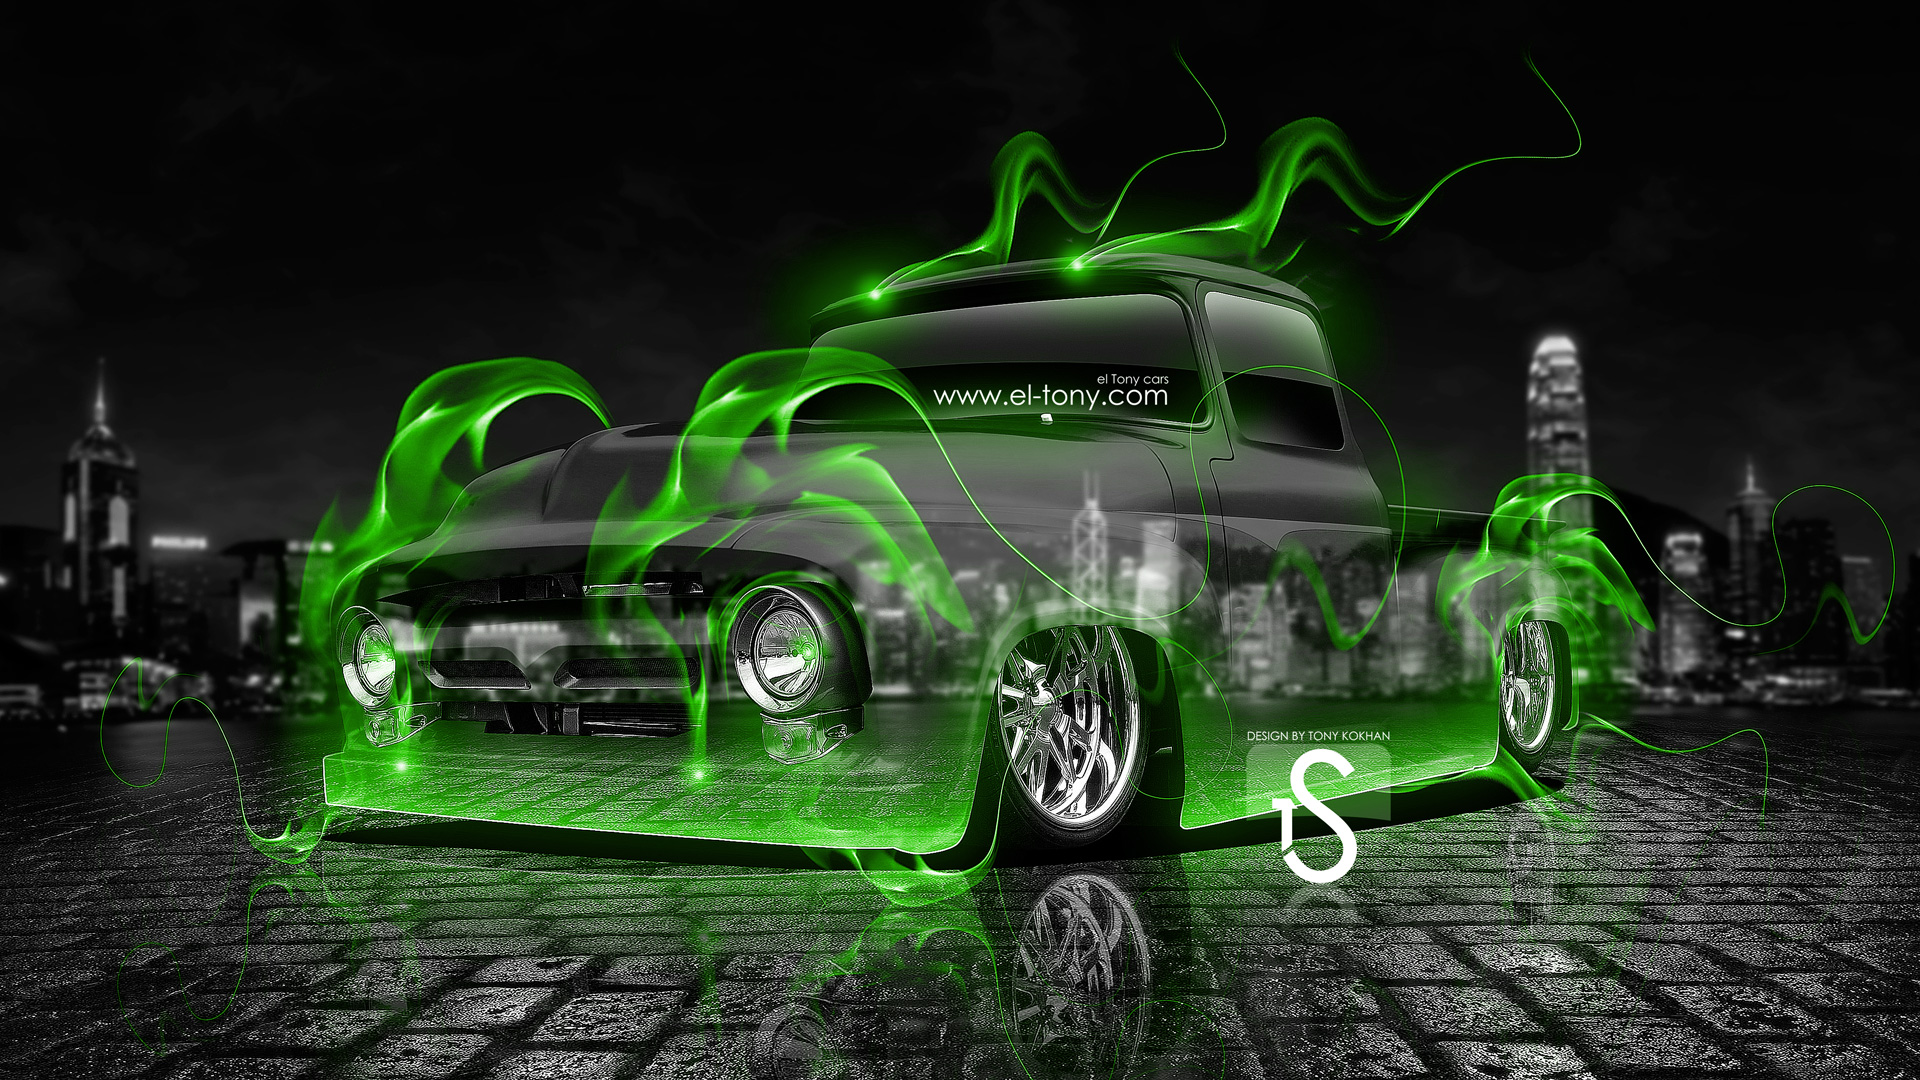 Ford F100 Truck Green Fire Crystal Car 2013  ...